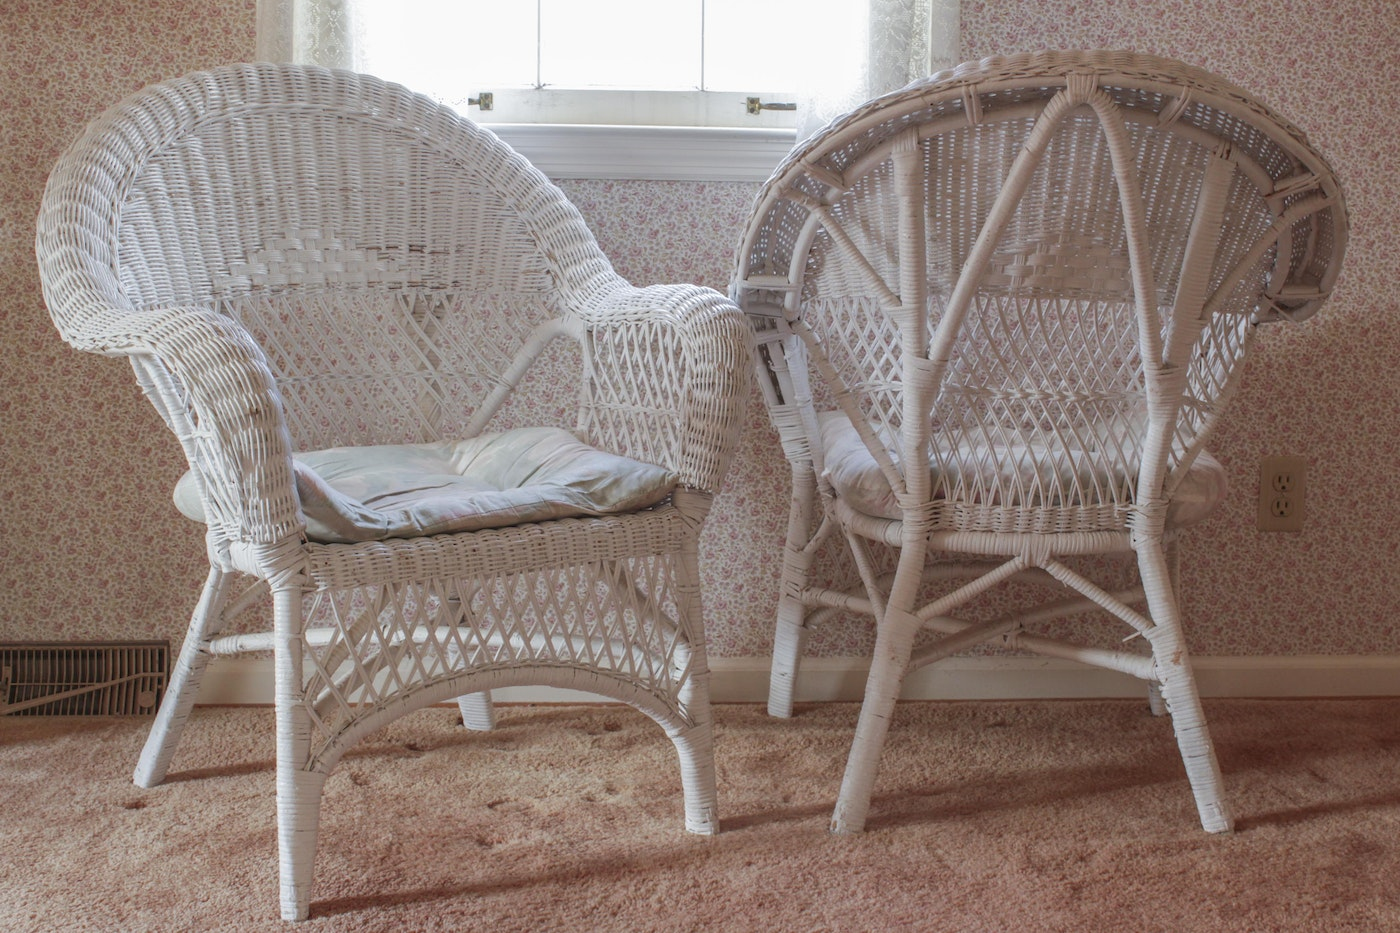 Vintage White Wicker Chairs Ebth